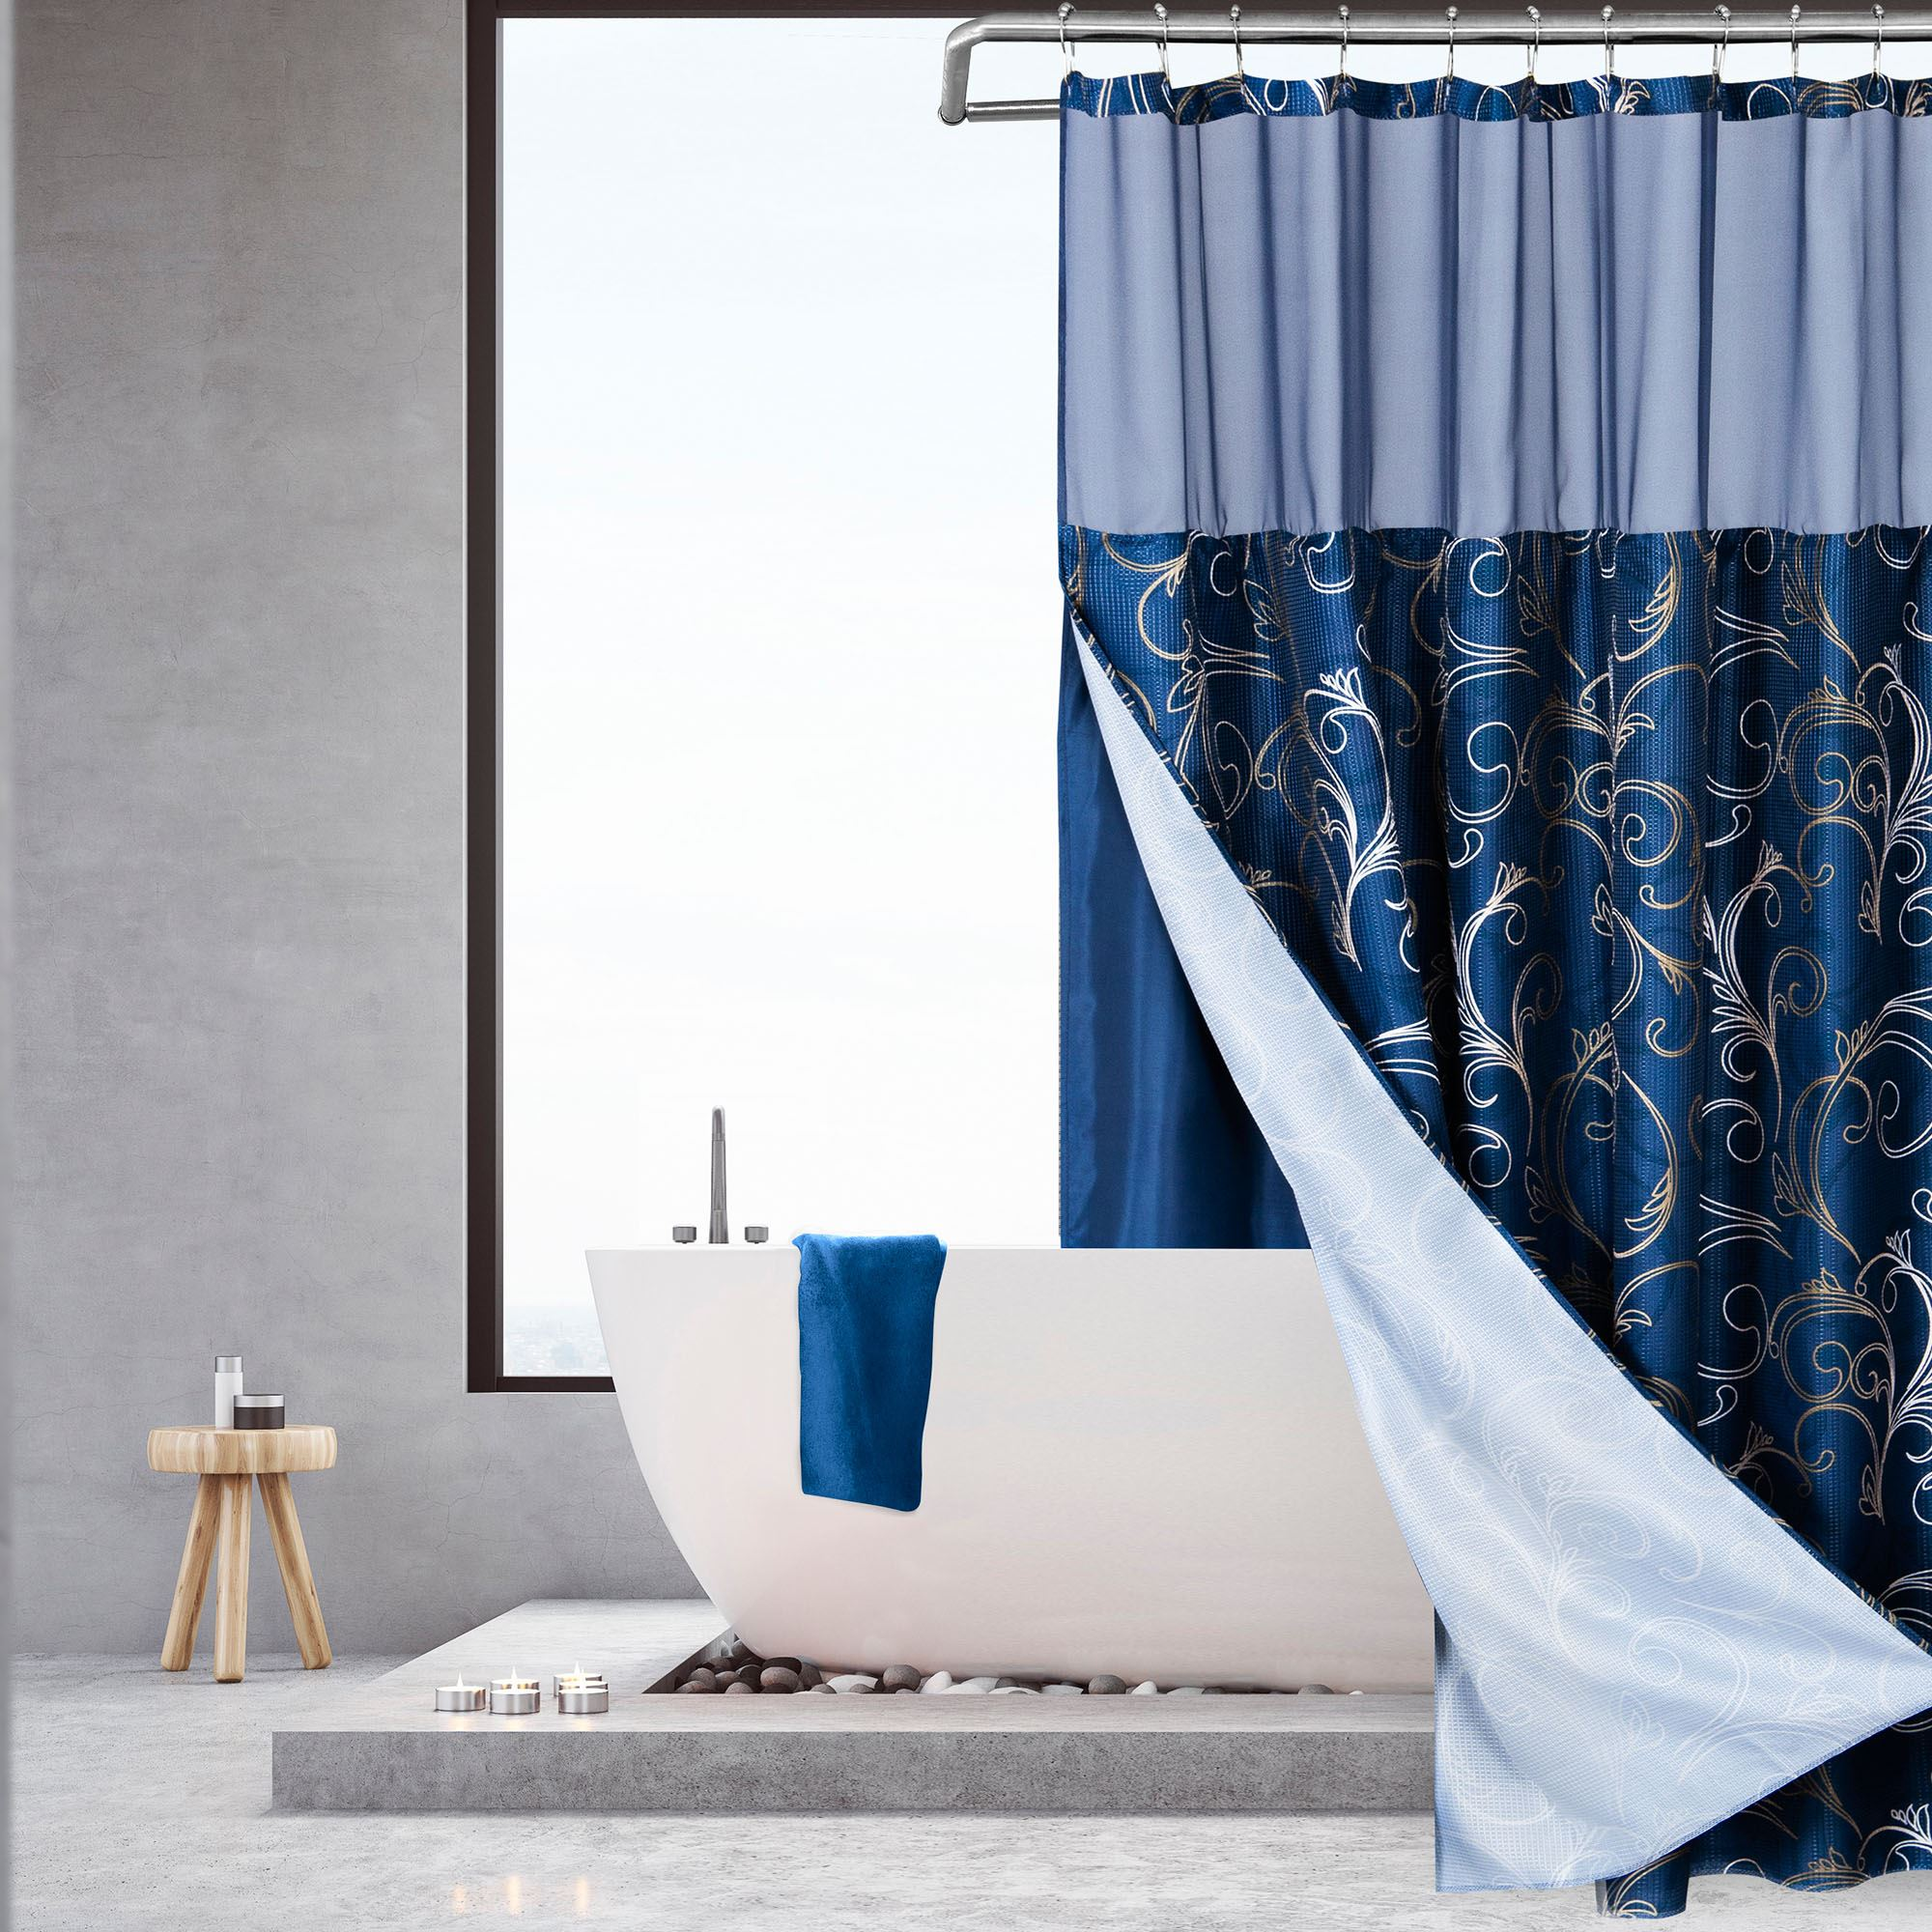 ellery navy blue and gold scrolls shower curtain with detachable liner